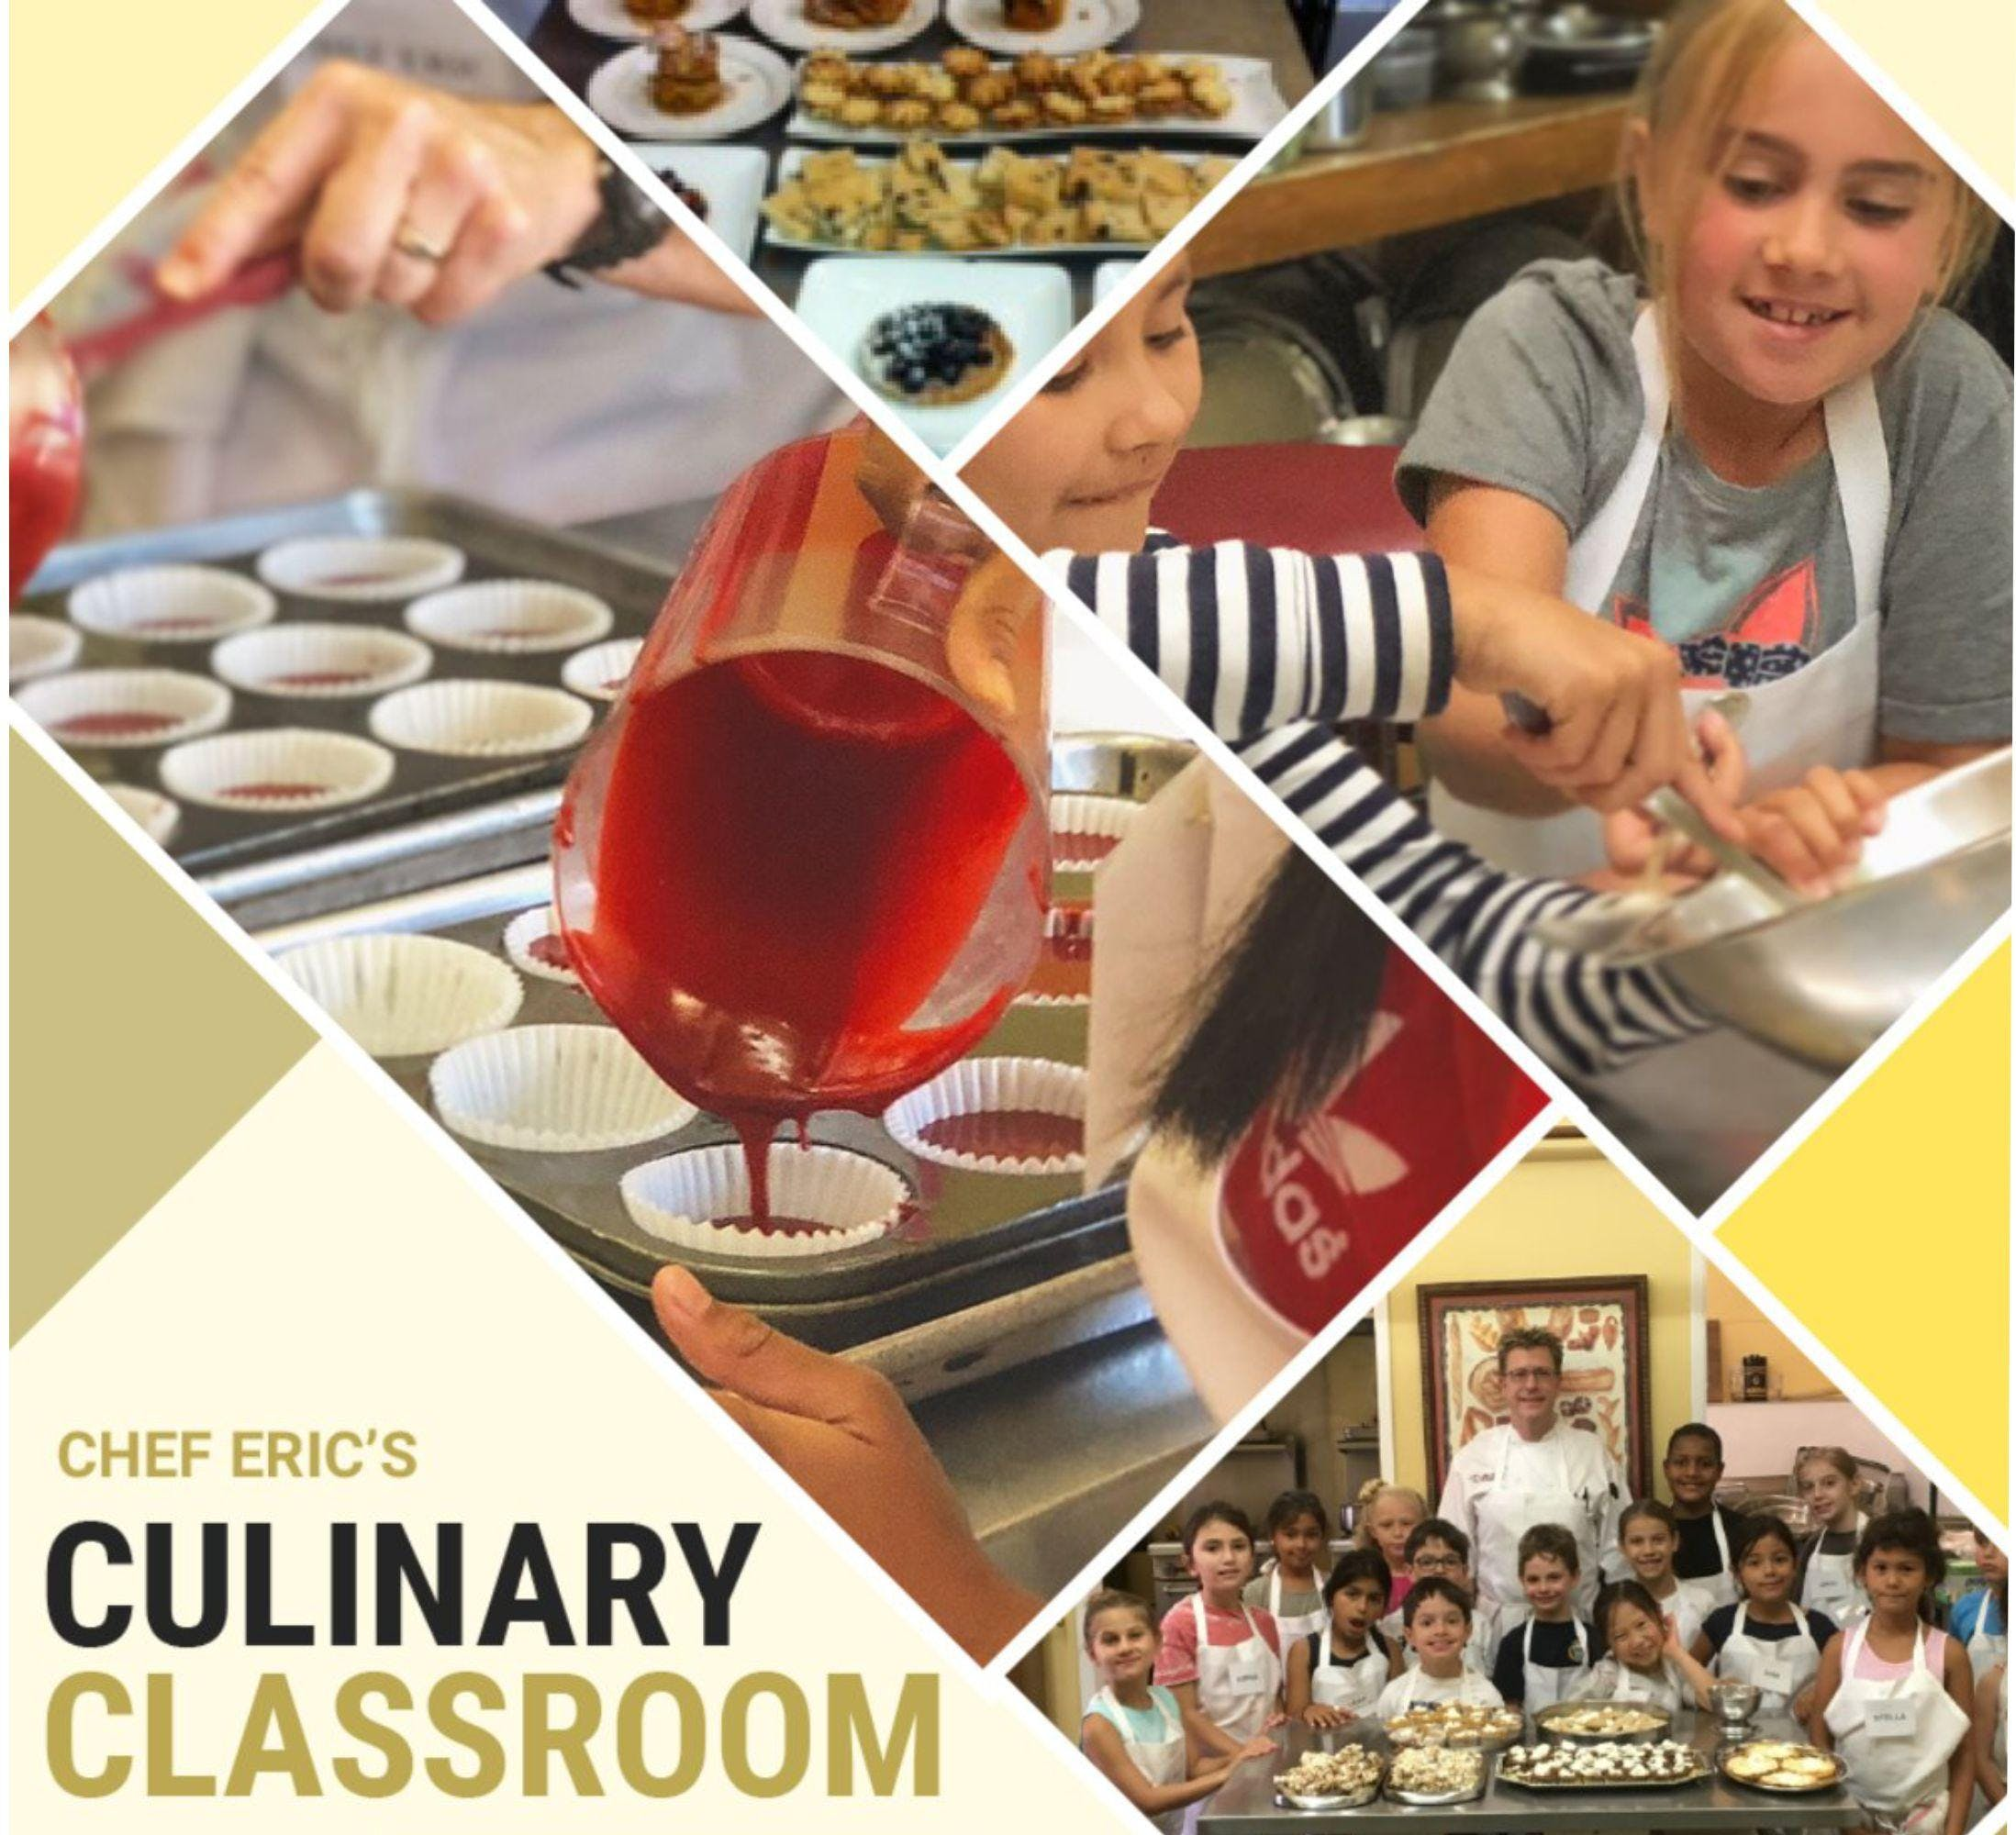 Kid's Summer Cooking and Baking Camps - Baking and Pastry - August 26-29